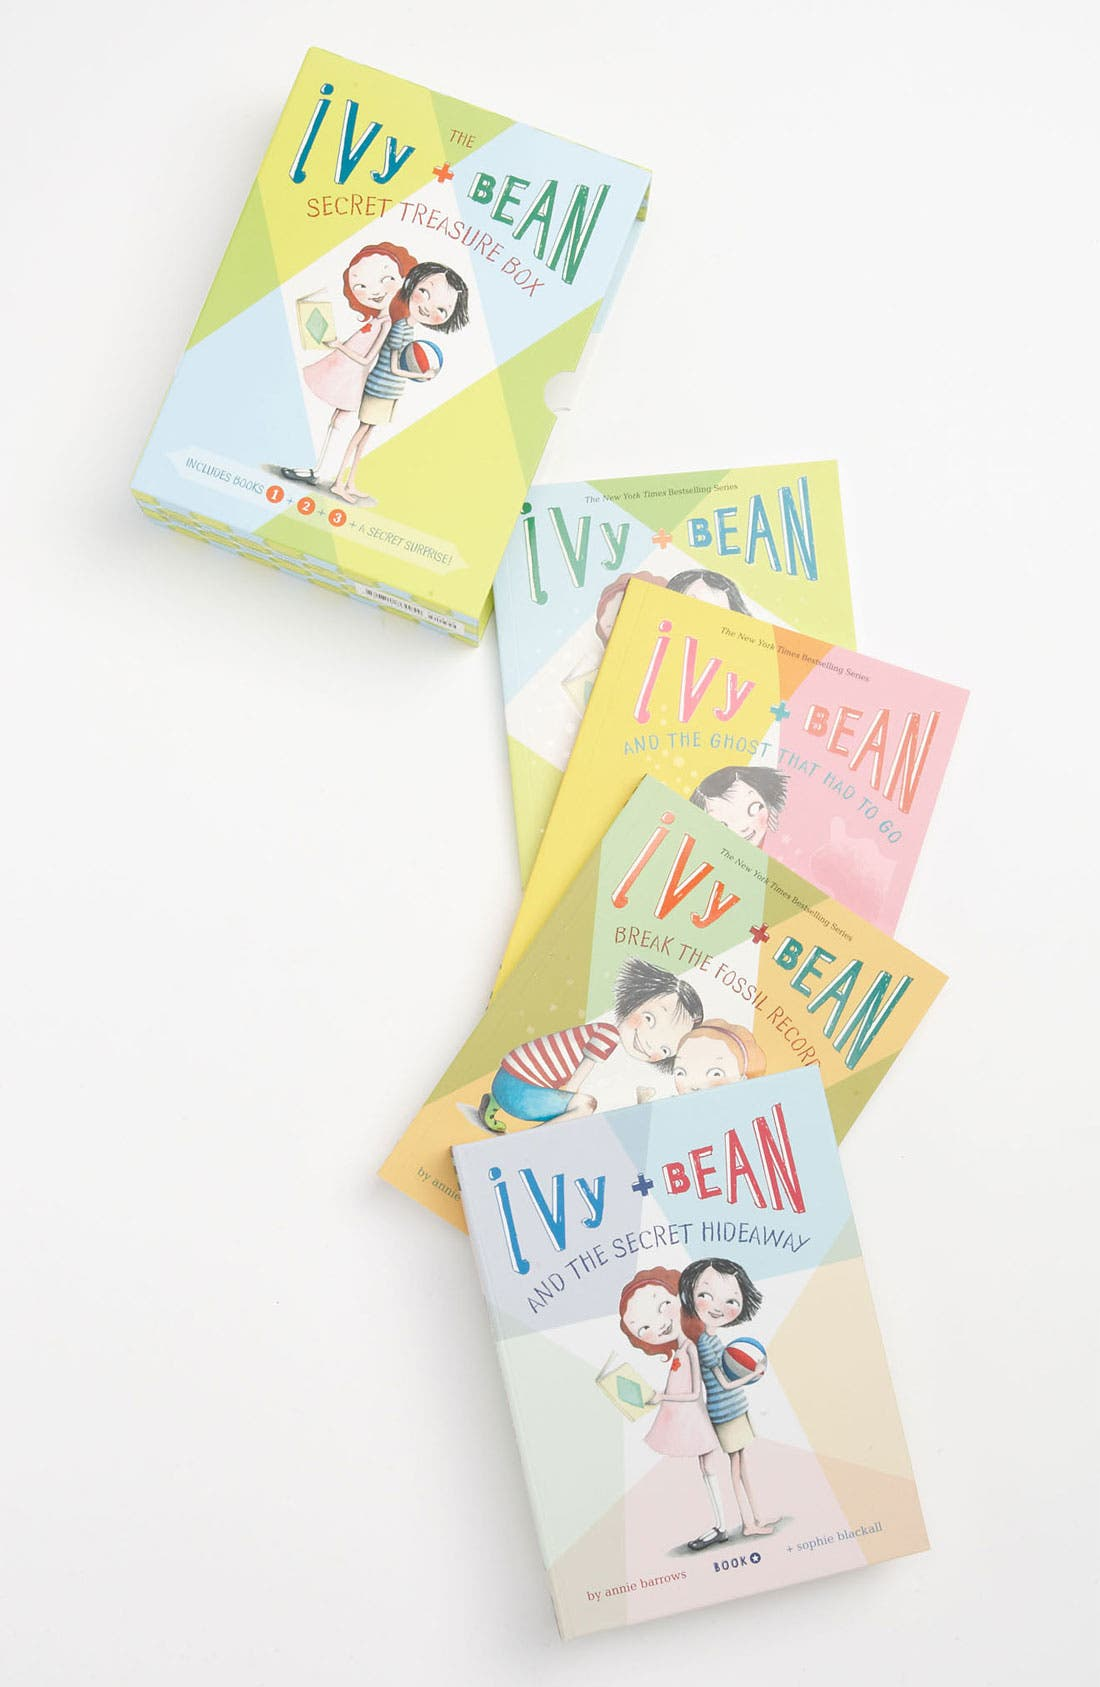 Main Image - Annie Barrows & Sophie Blackall 'Ivy + Bean' Secret Treasure Box Set